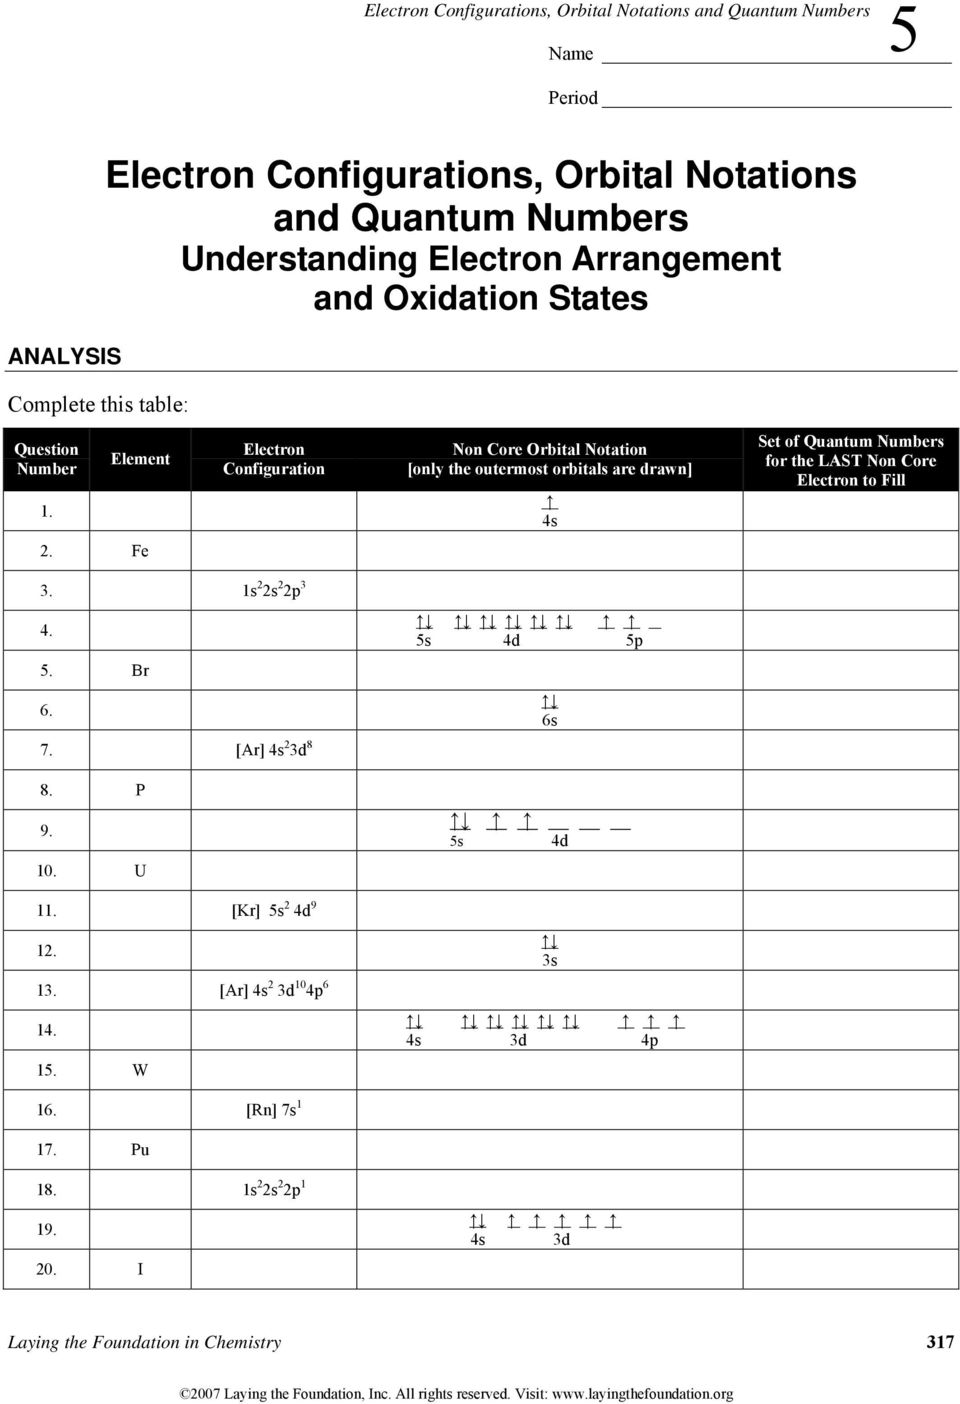 Electron Configurations, Orbital Notations and Quantum ...